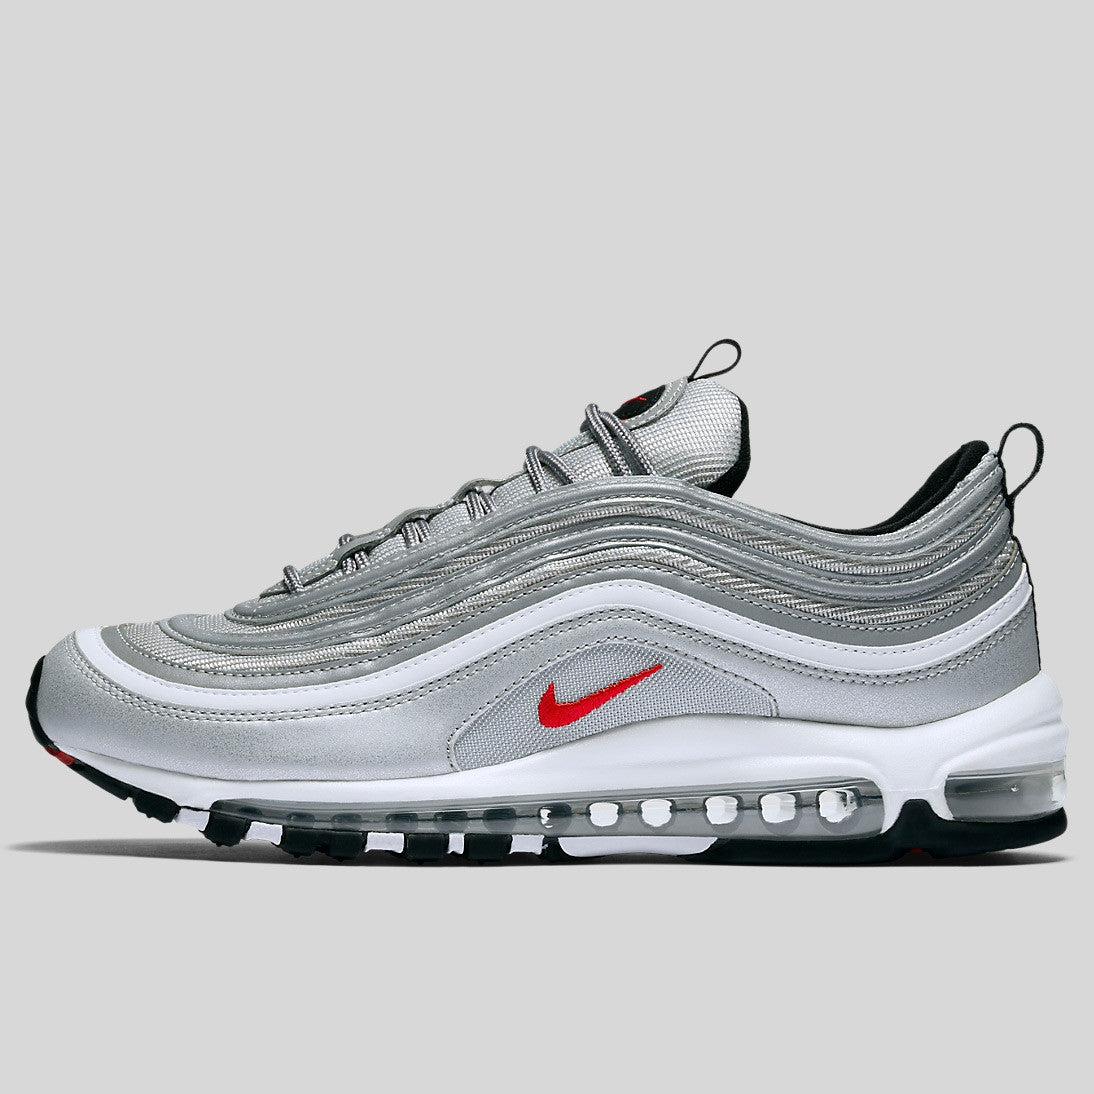 best service 399a2 77a02 ... real nike air max liquid silver uk liquid silver publishing b8e7c f690c  ...